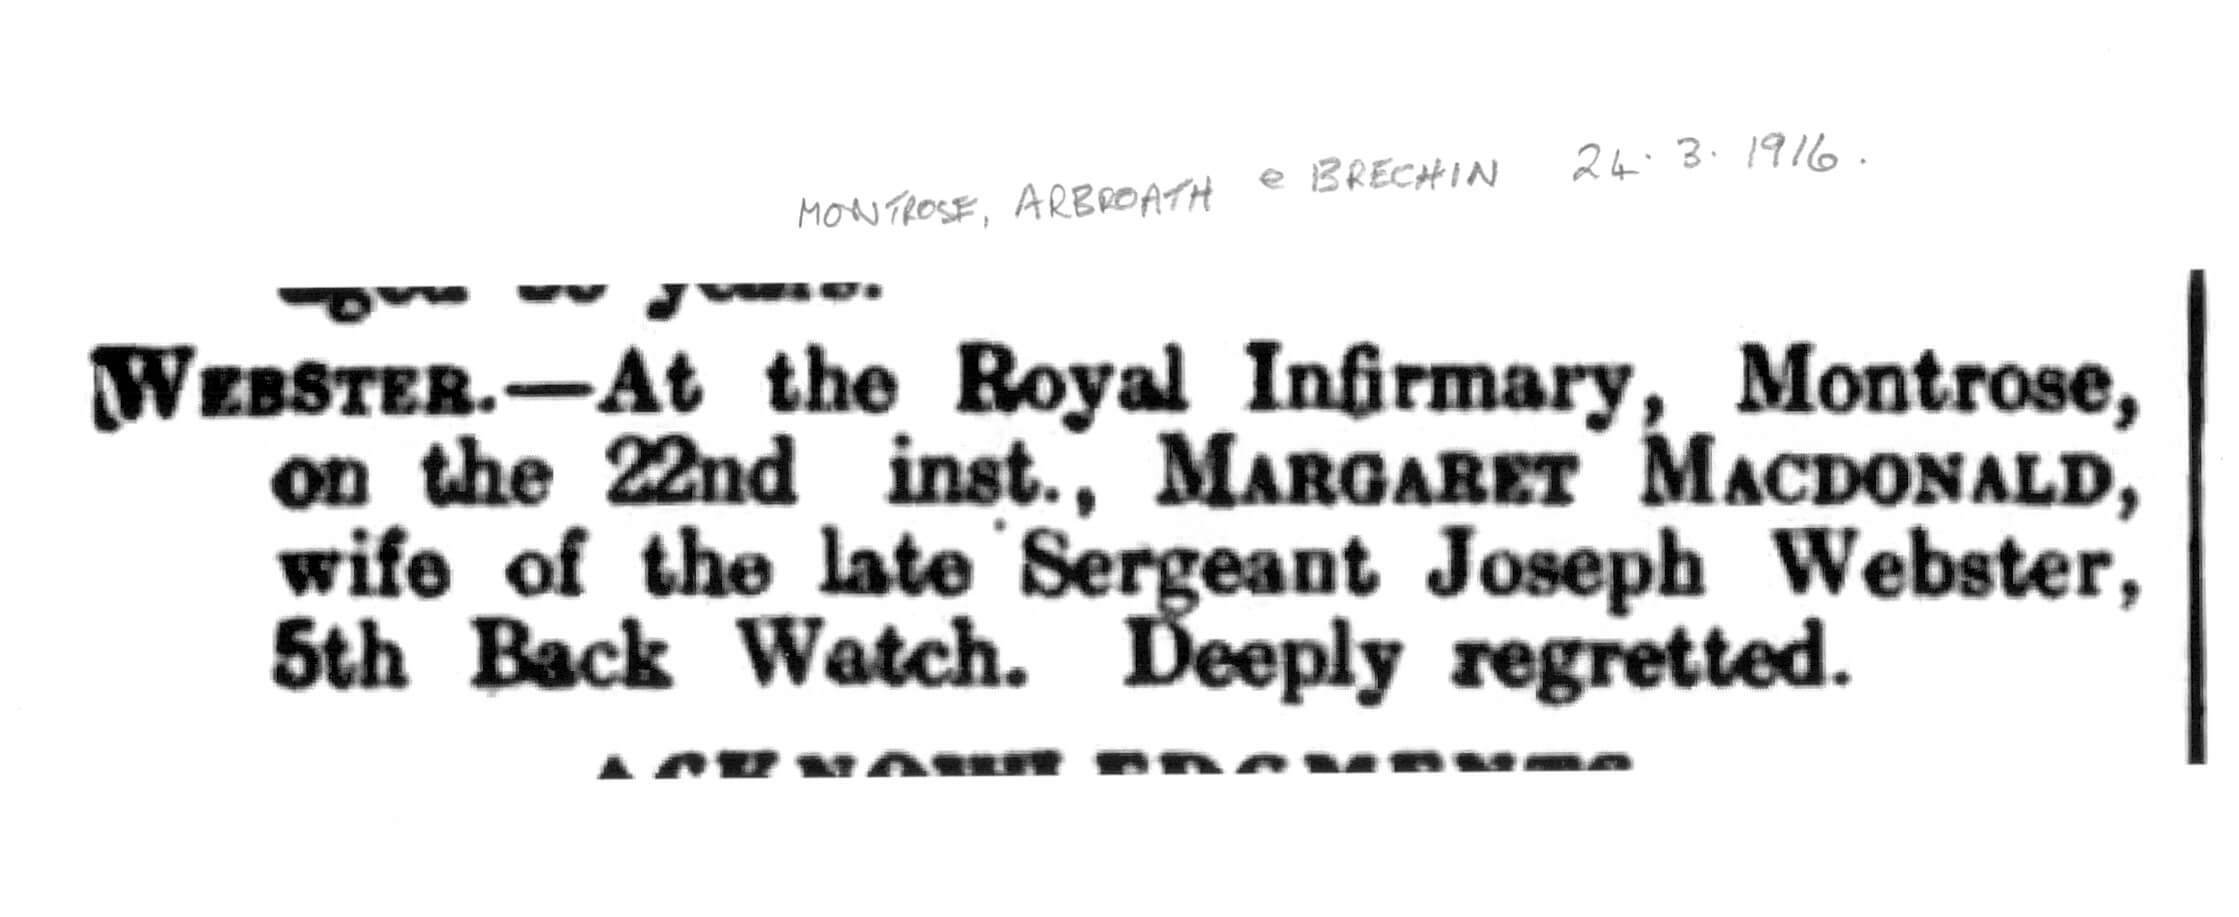 Montrose Review 24 Mar 1916